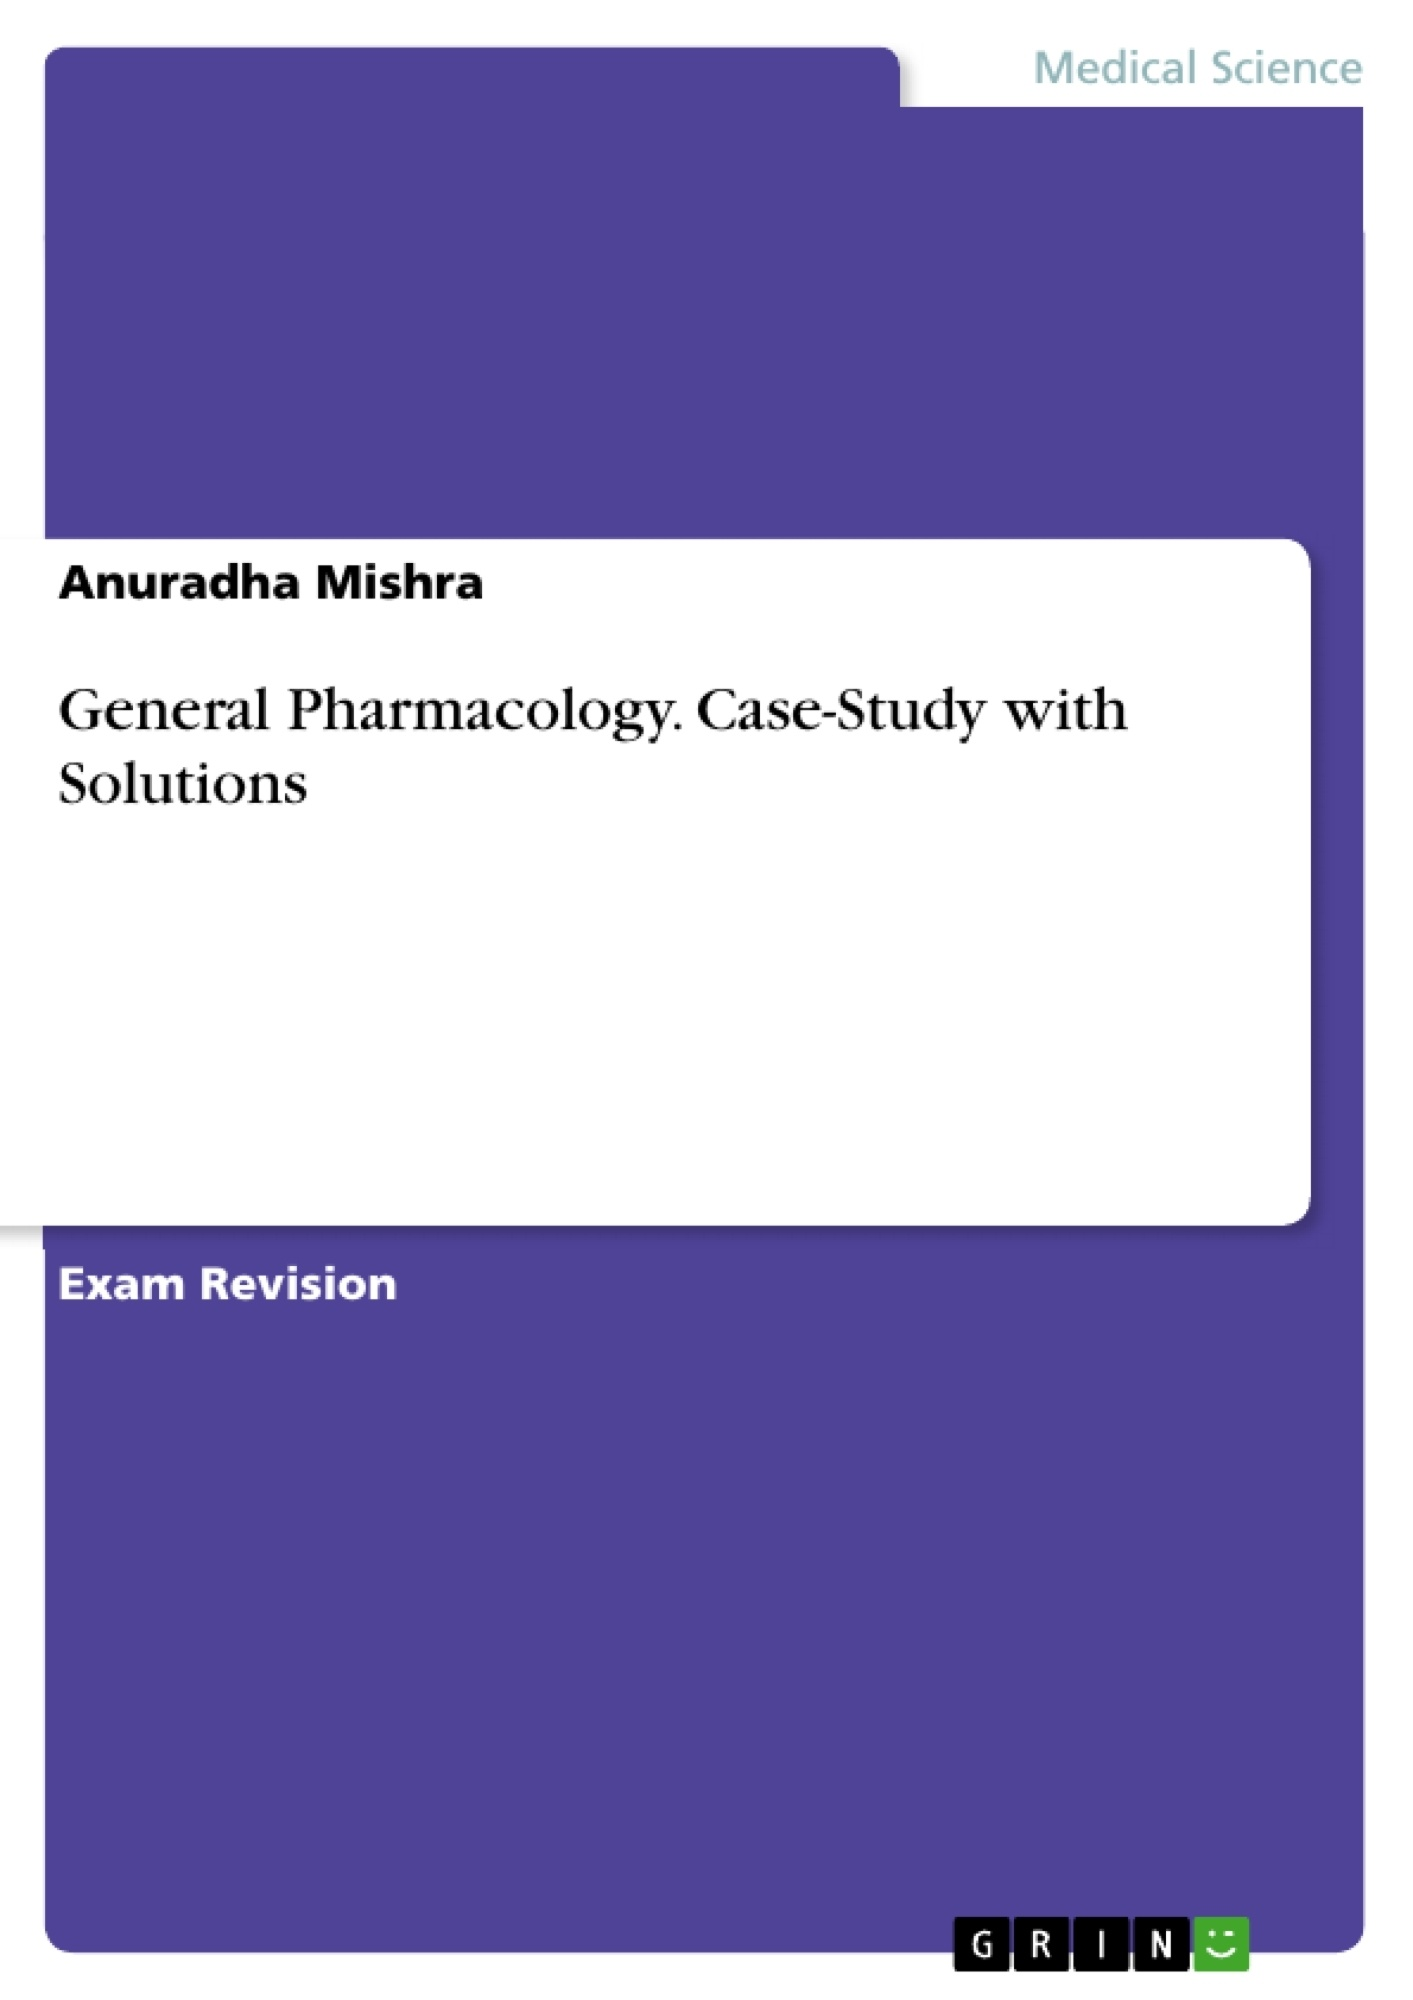 Title: General Pharmacology. Case-Study with Solutions